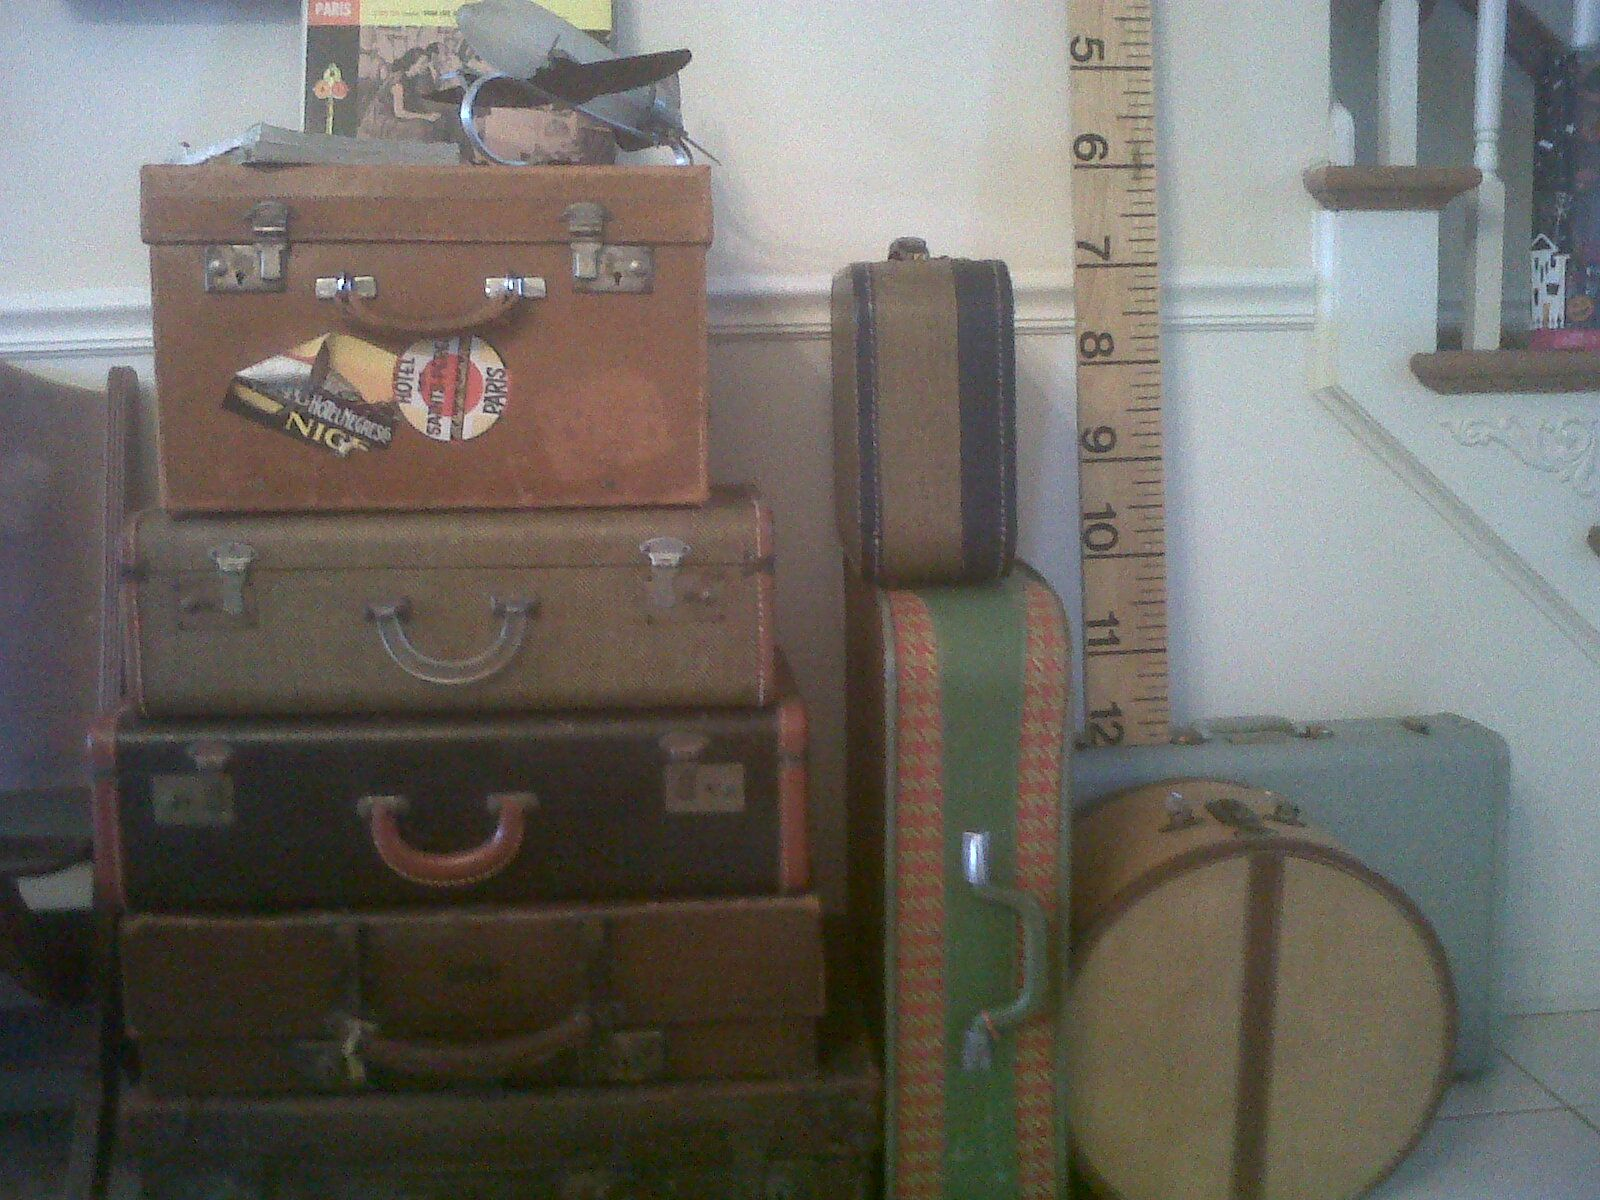 I love old suitcases and have had them used as side tables for years in my own home .